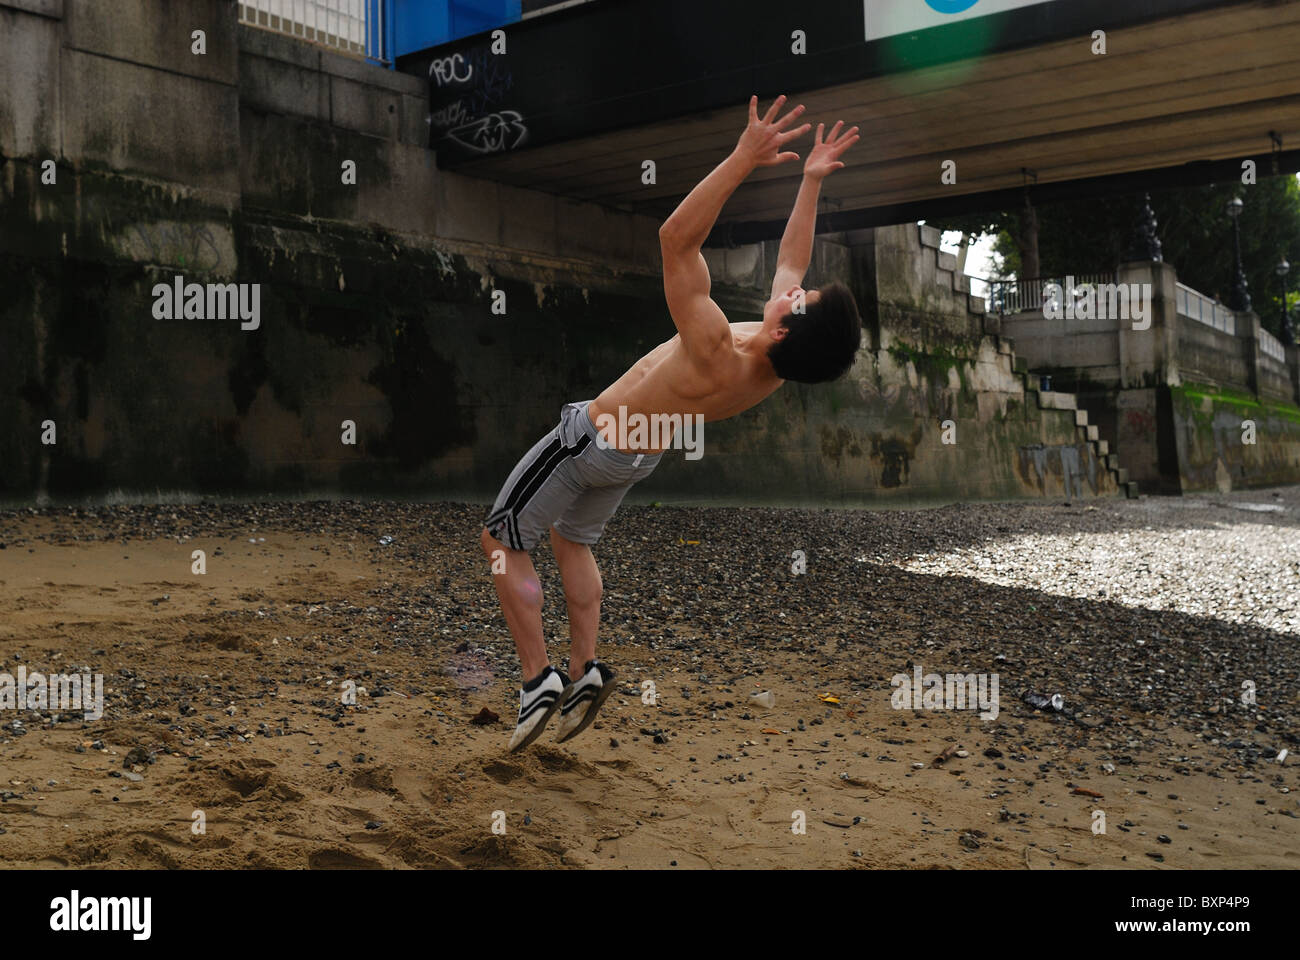 Traceur practicing the art of Parkour along bank of River Thames in London. - Stock Image